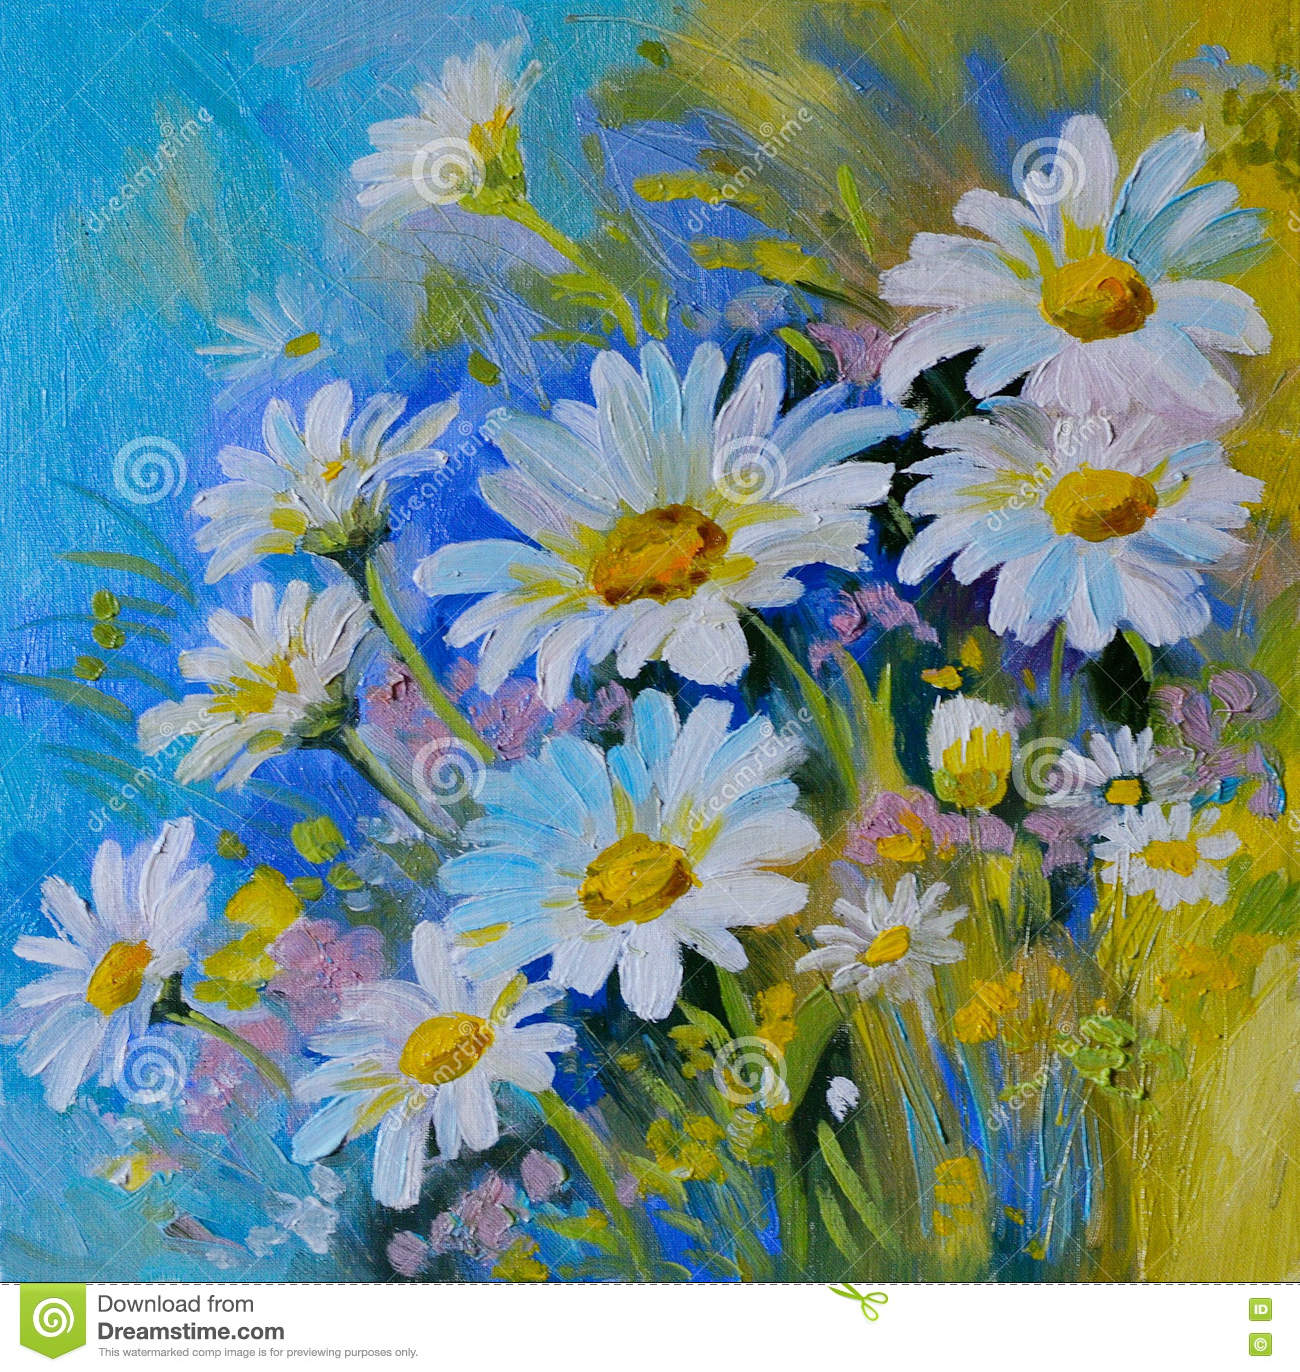 Oil painting abstract illustration of flowers daisies greens download oil painting abstract illustration of flowers daisies greens stock illustration illustration izmirmasajfo